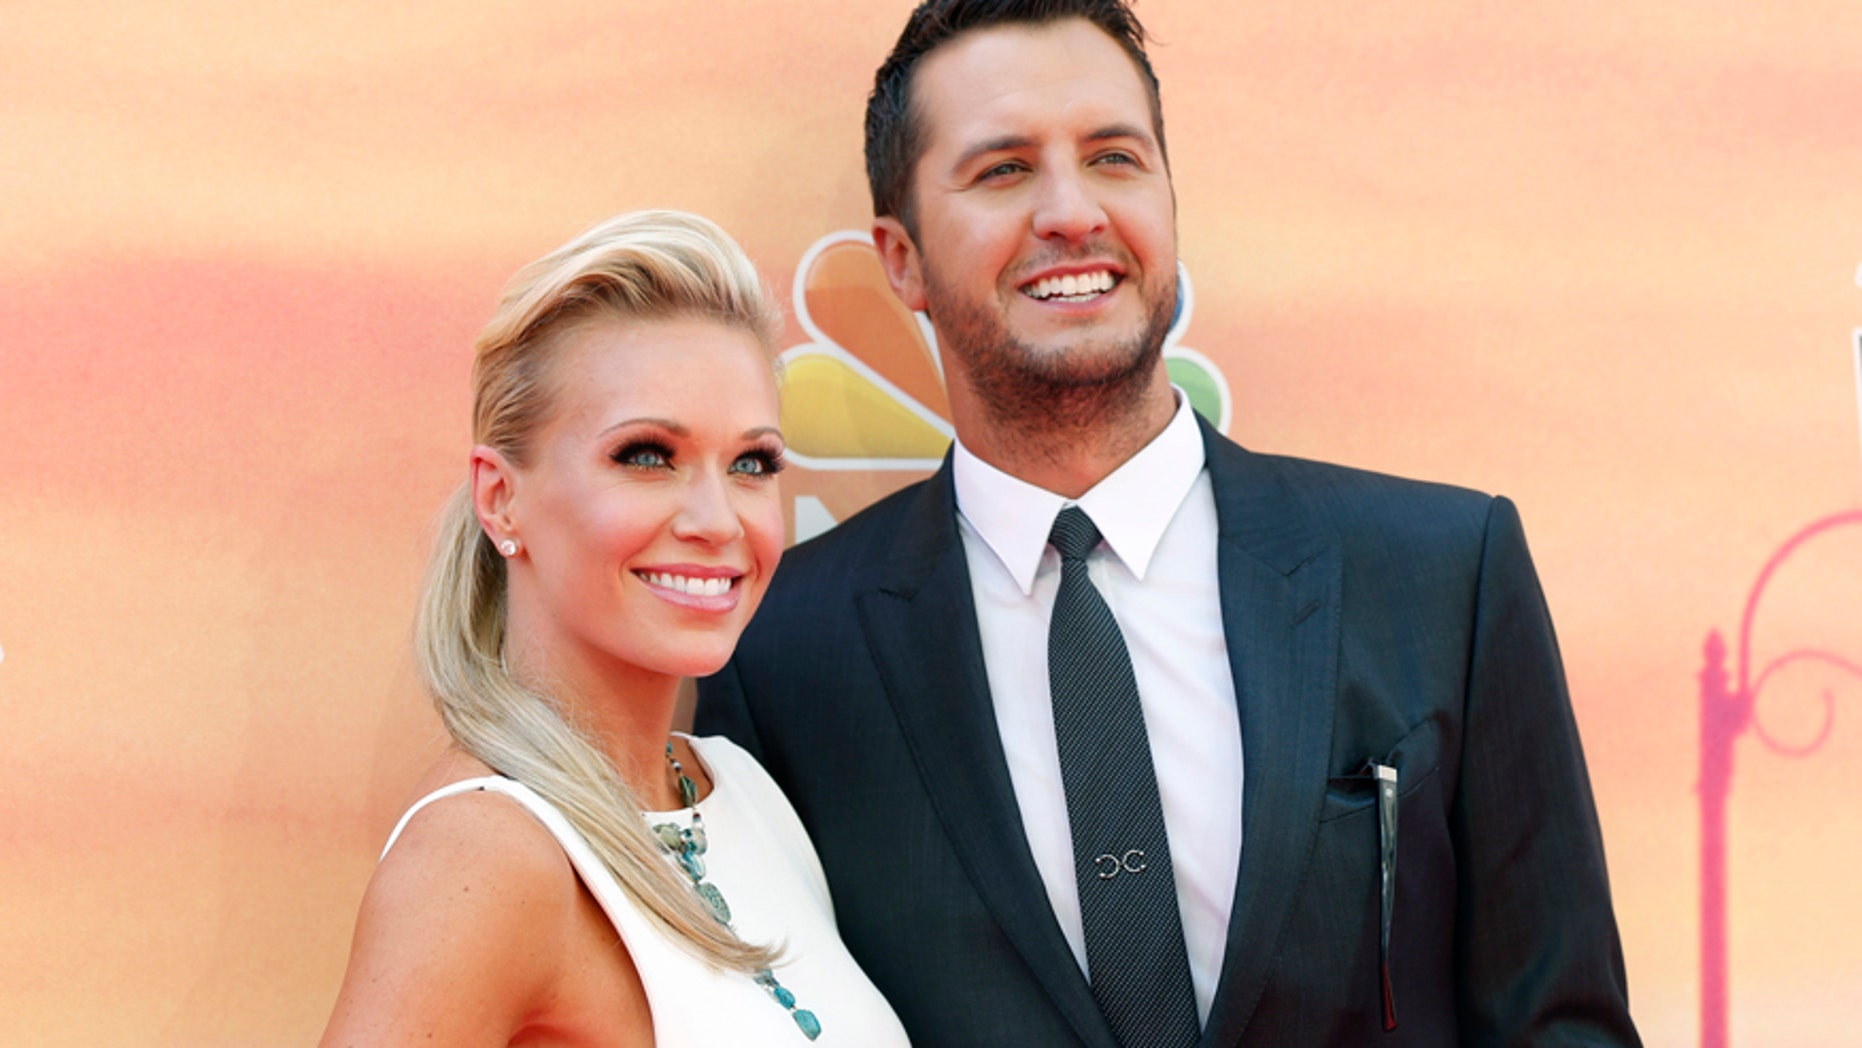 Luke Bryan's wife Caroline, left, said suffering a miscarriage was a